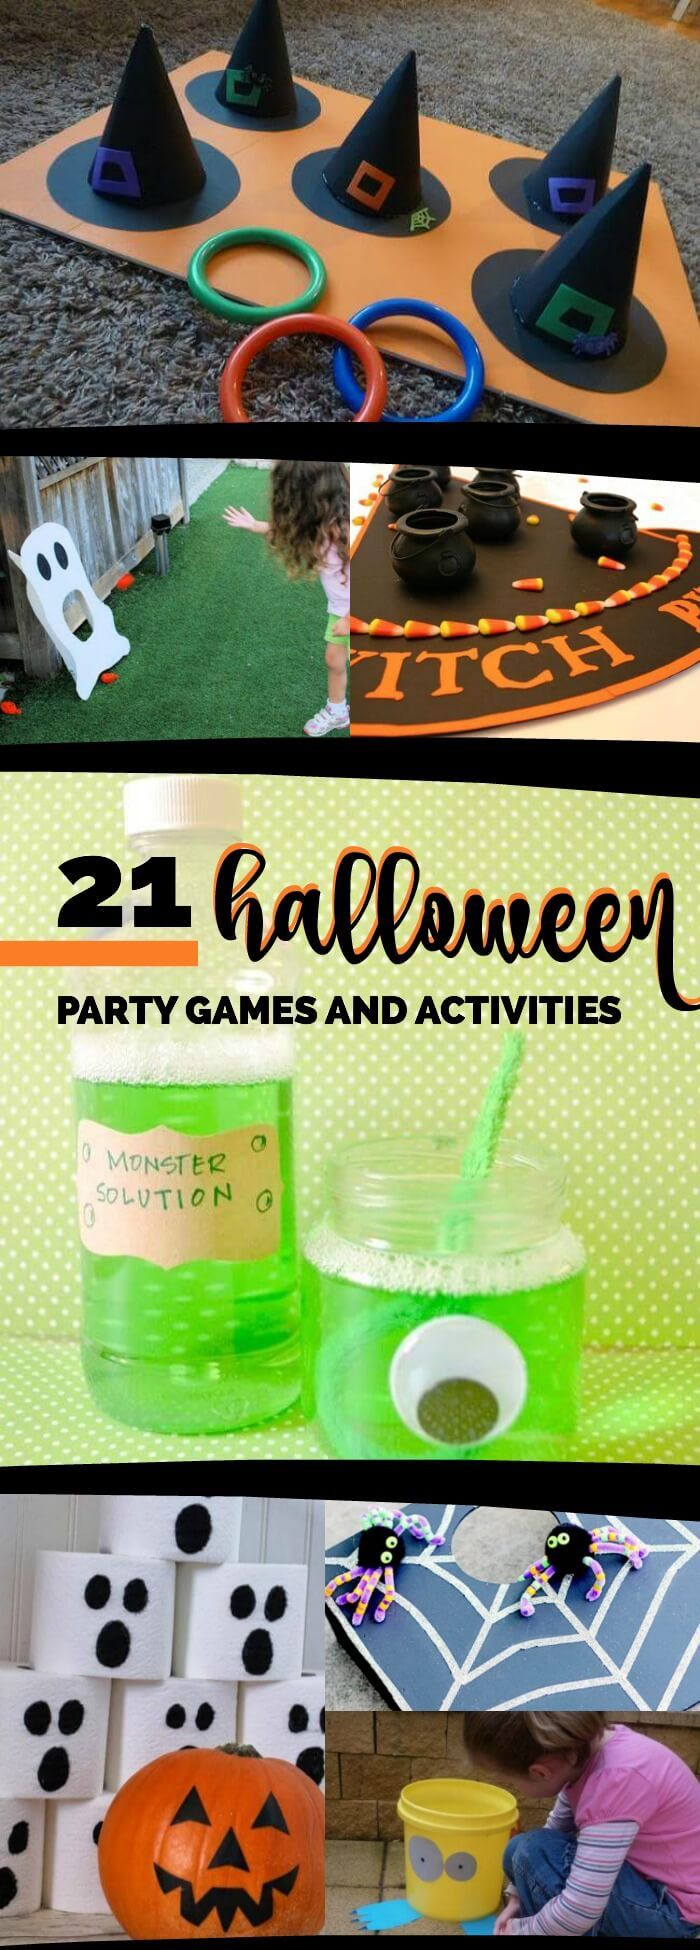 21 Halloween Party Games, Ideas & Activities | Halloween party ...